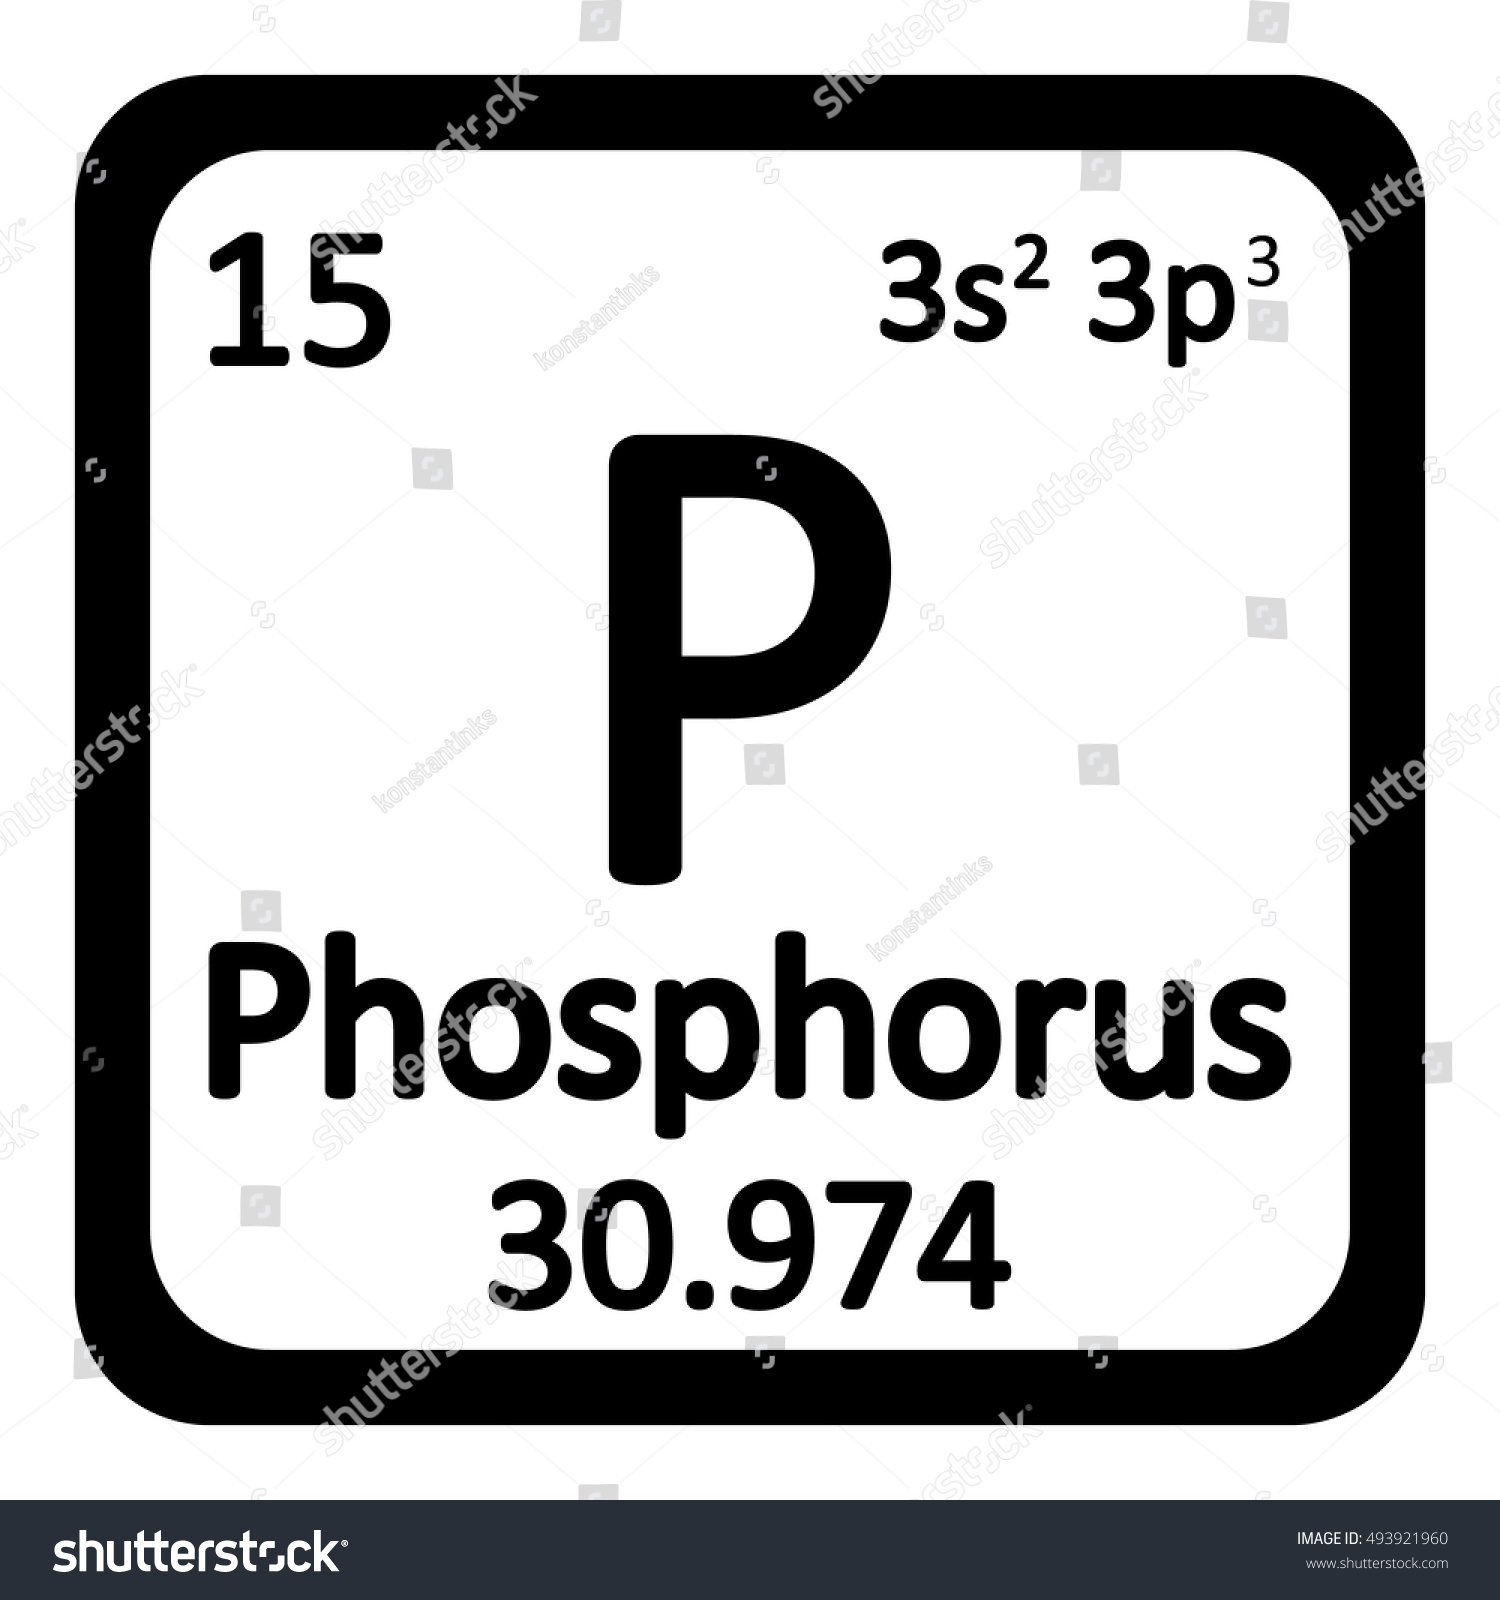 Phosphorus in periodic table image collections periodic table images phosphorus in periodic table gallery periodic table images phosphorus in periodic table choice image periodic table gamestrikefo Image collections